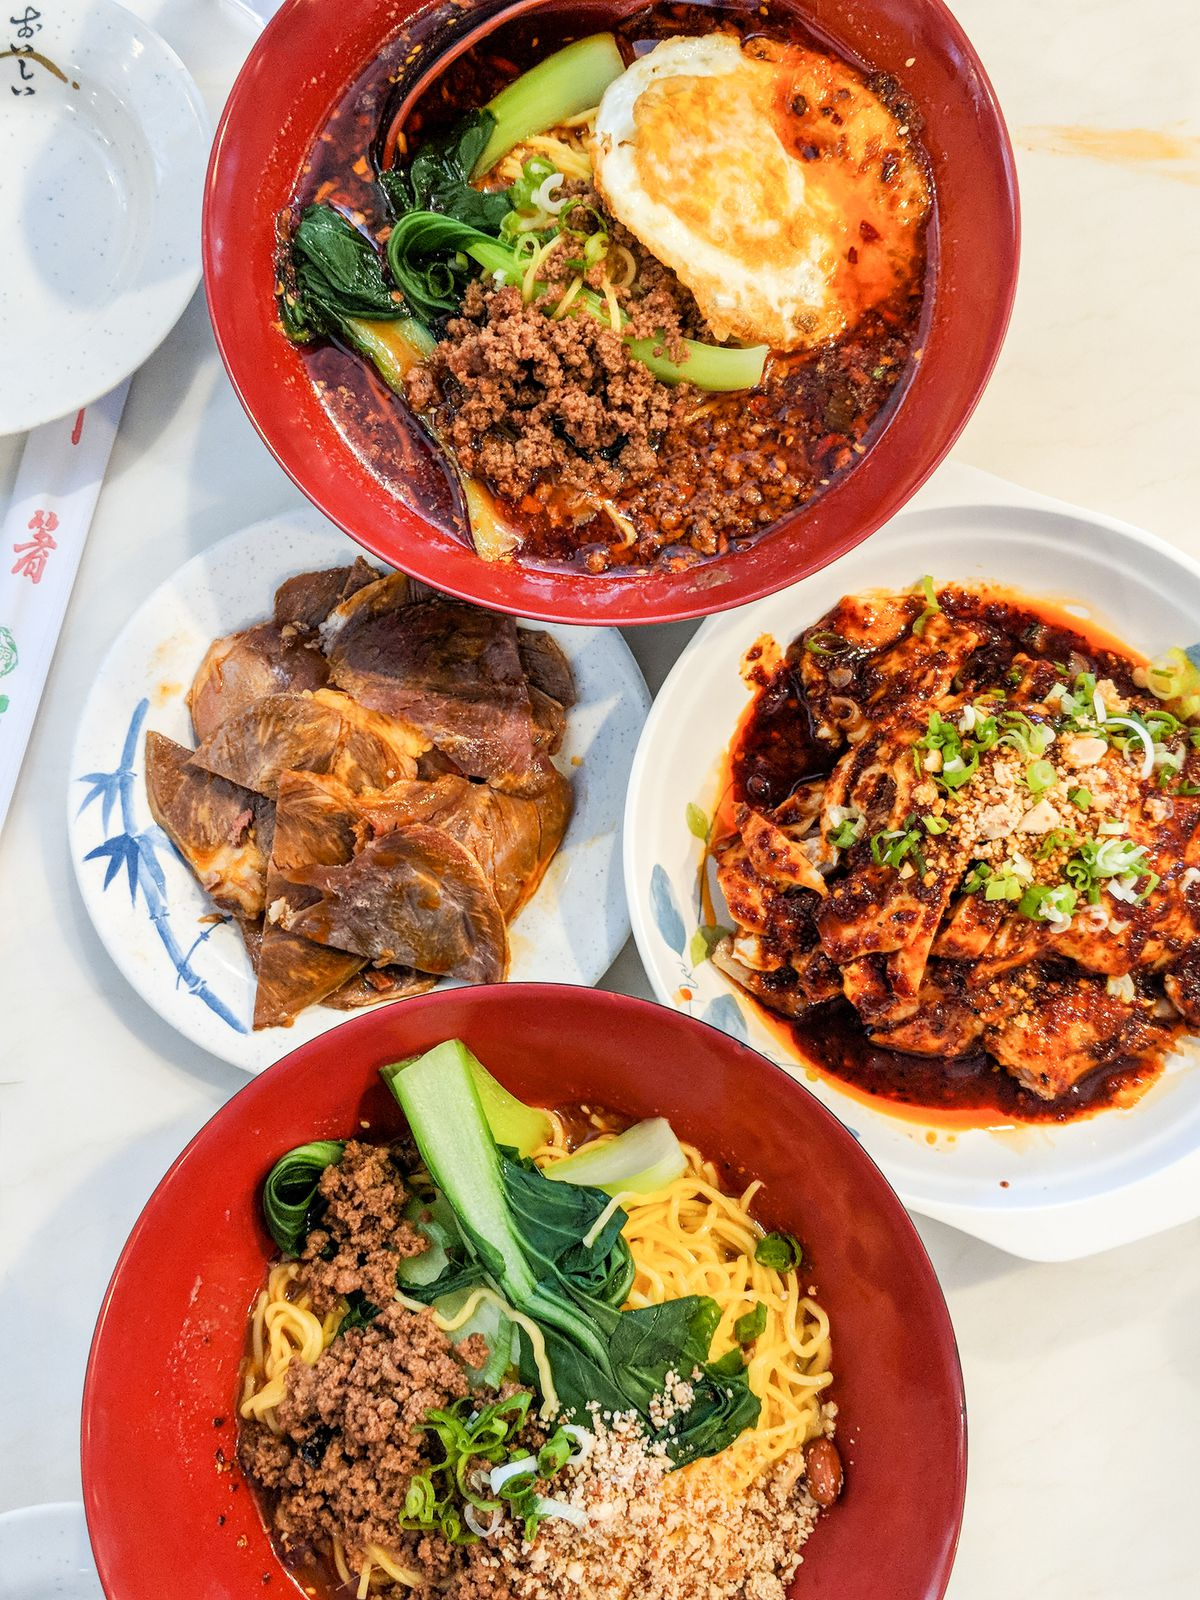 Noodles, sliced beef, and cold chicken at Chongqing special noodles